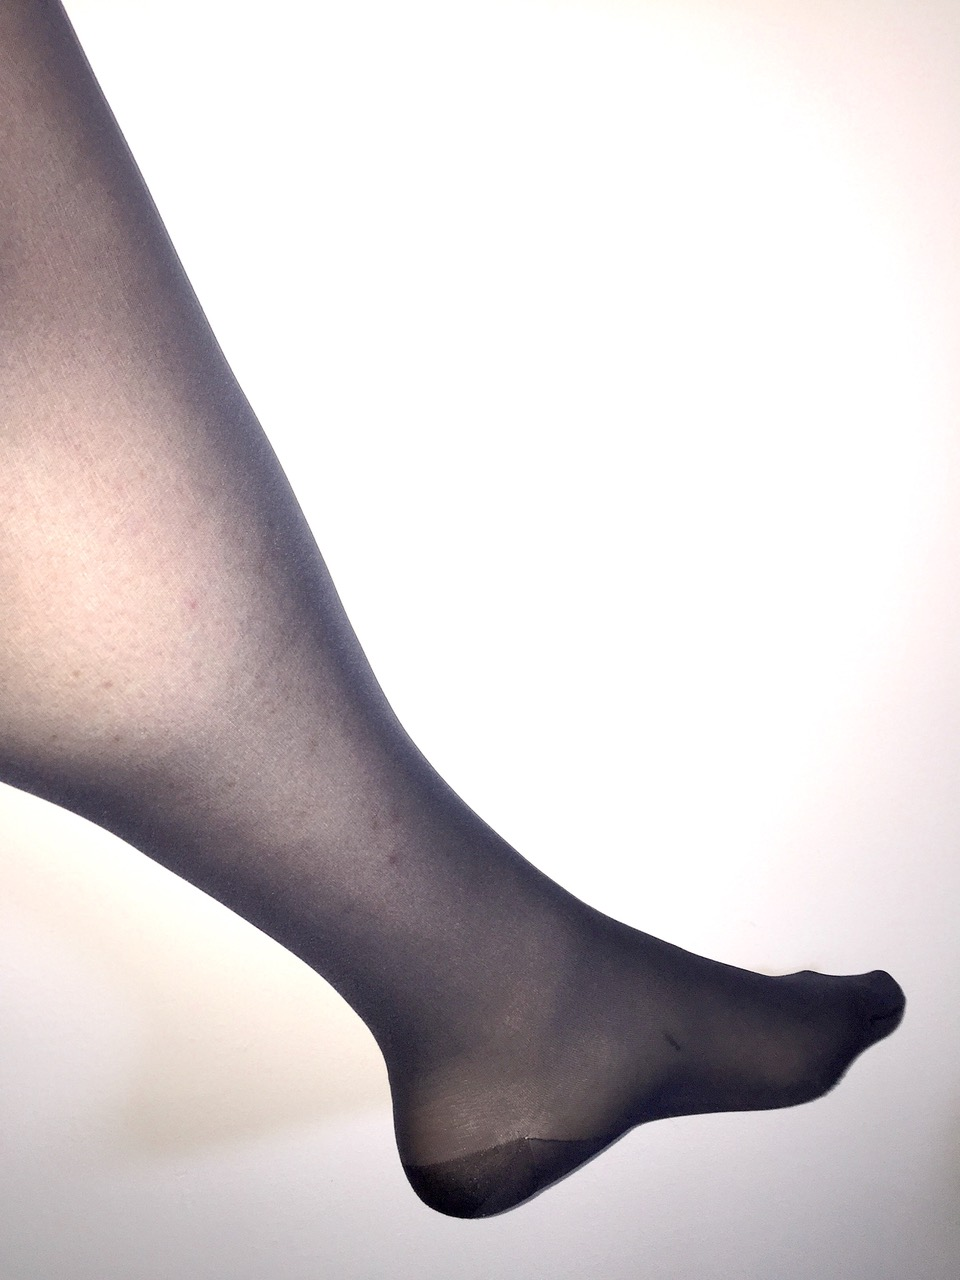 Wearing pantyhose uncomfortable, cumshot without permission